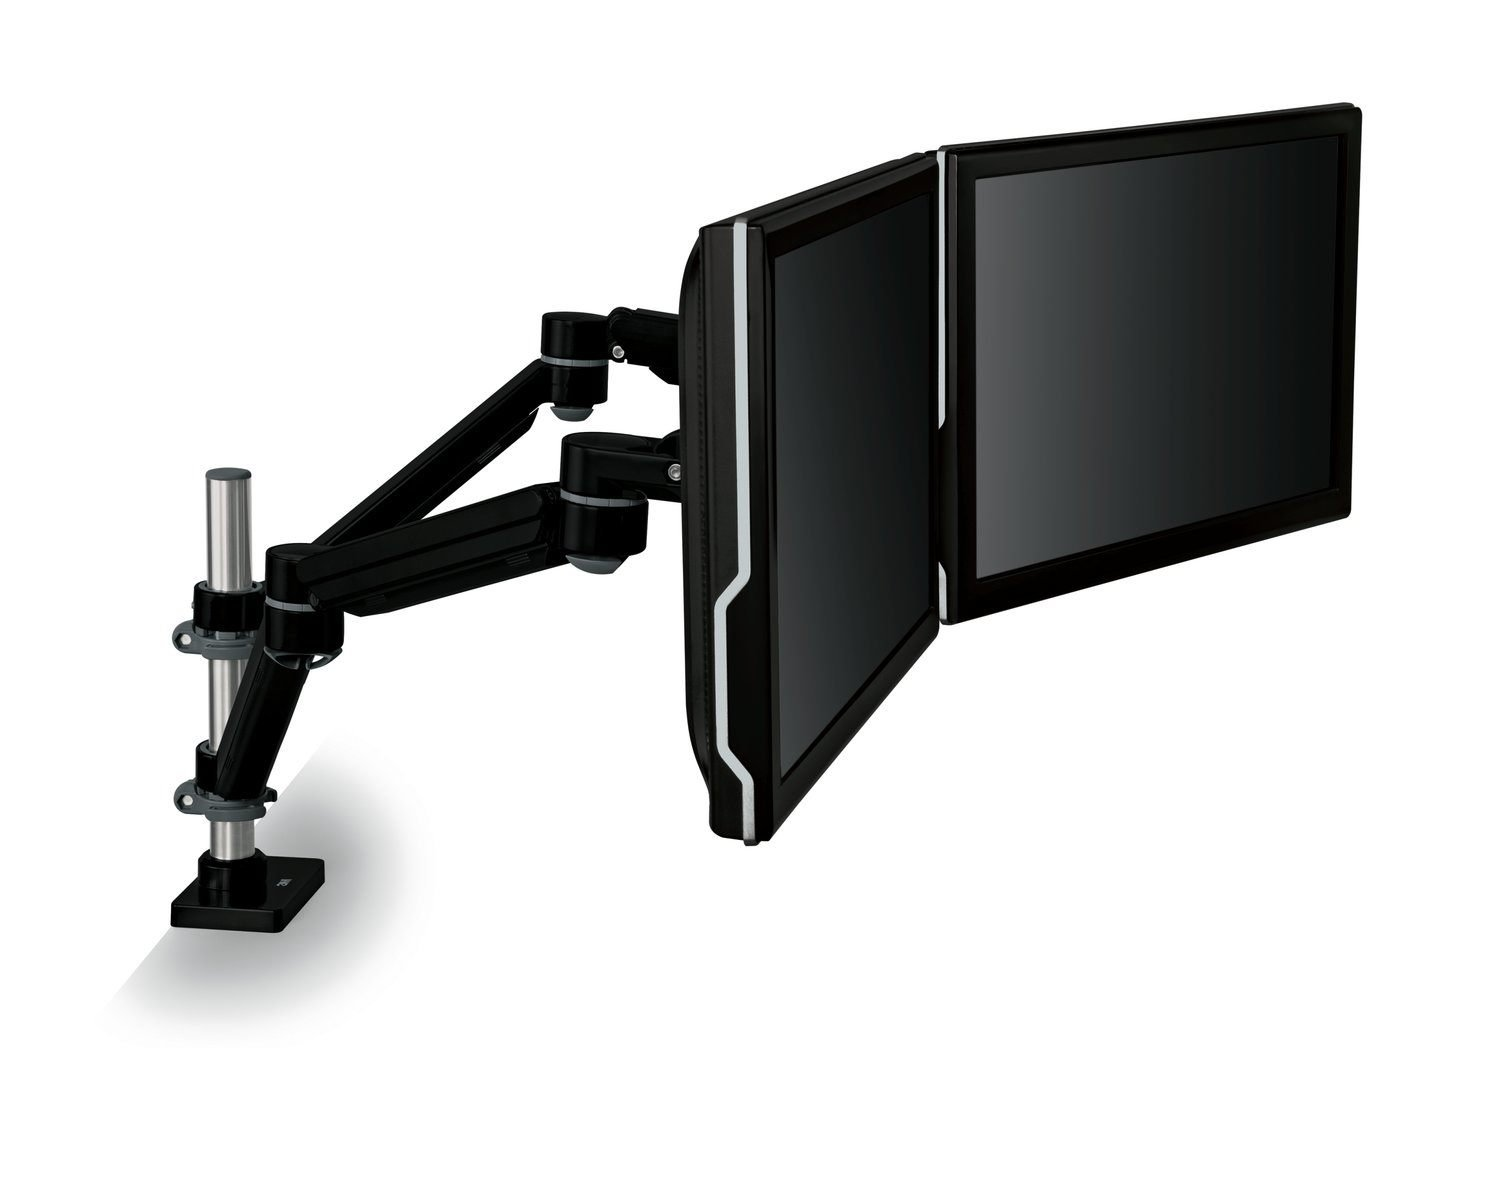 """3M Easy Adjust Desk Mount Dual Monitor Arm, Adjust Height, Tilt, Swivel and Rotate by Holding and Moving Monitor, Free Up Desk Space, Clamp or Grommet, For Monitors to 20 lbs <= 27"""", Black (MA260MB)"""